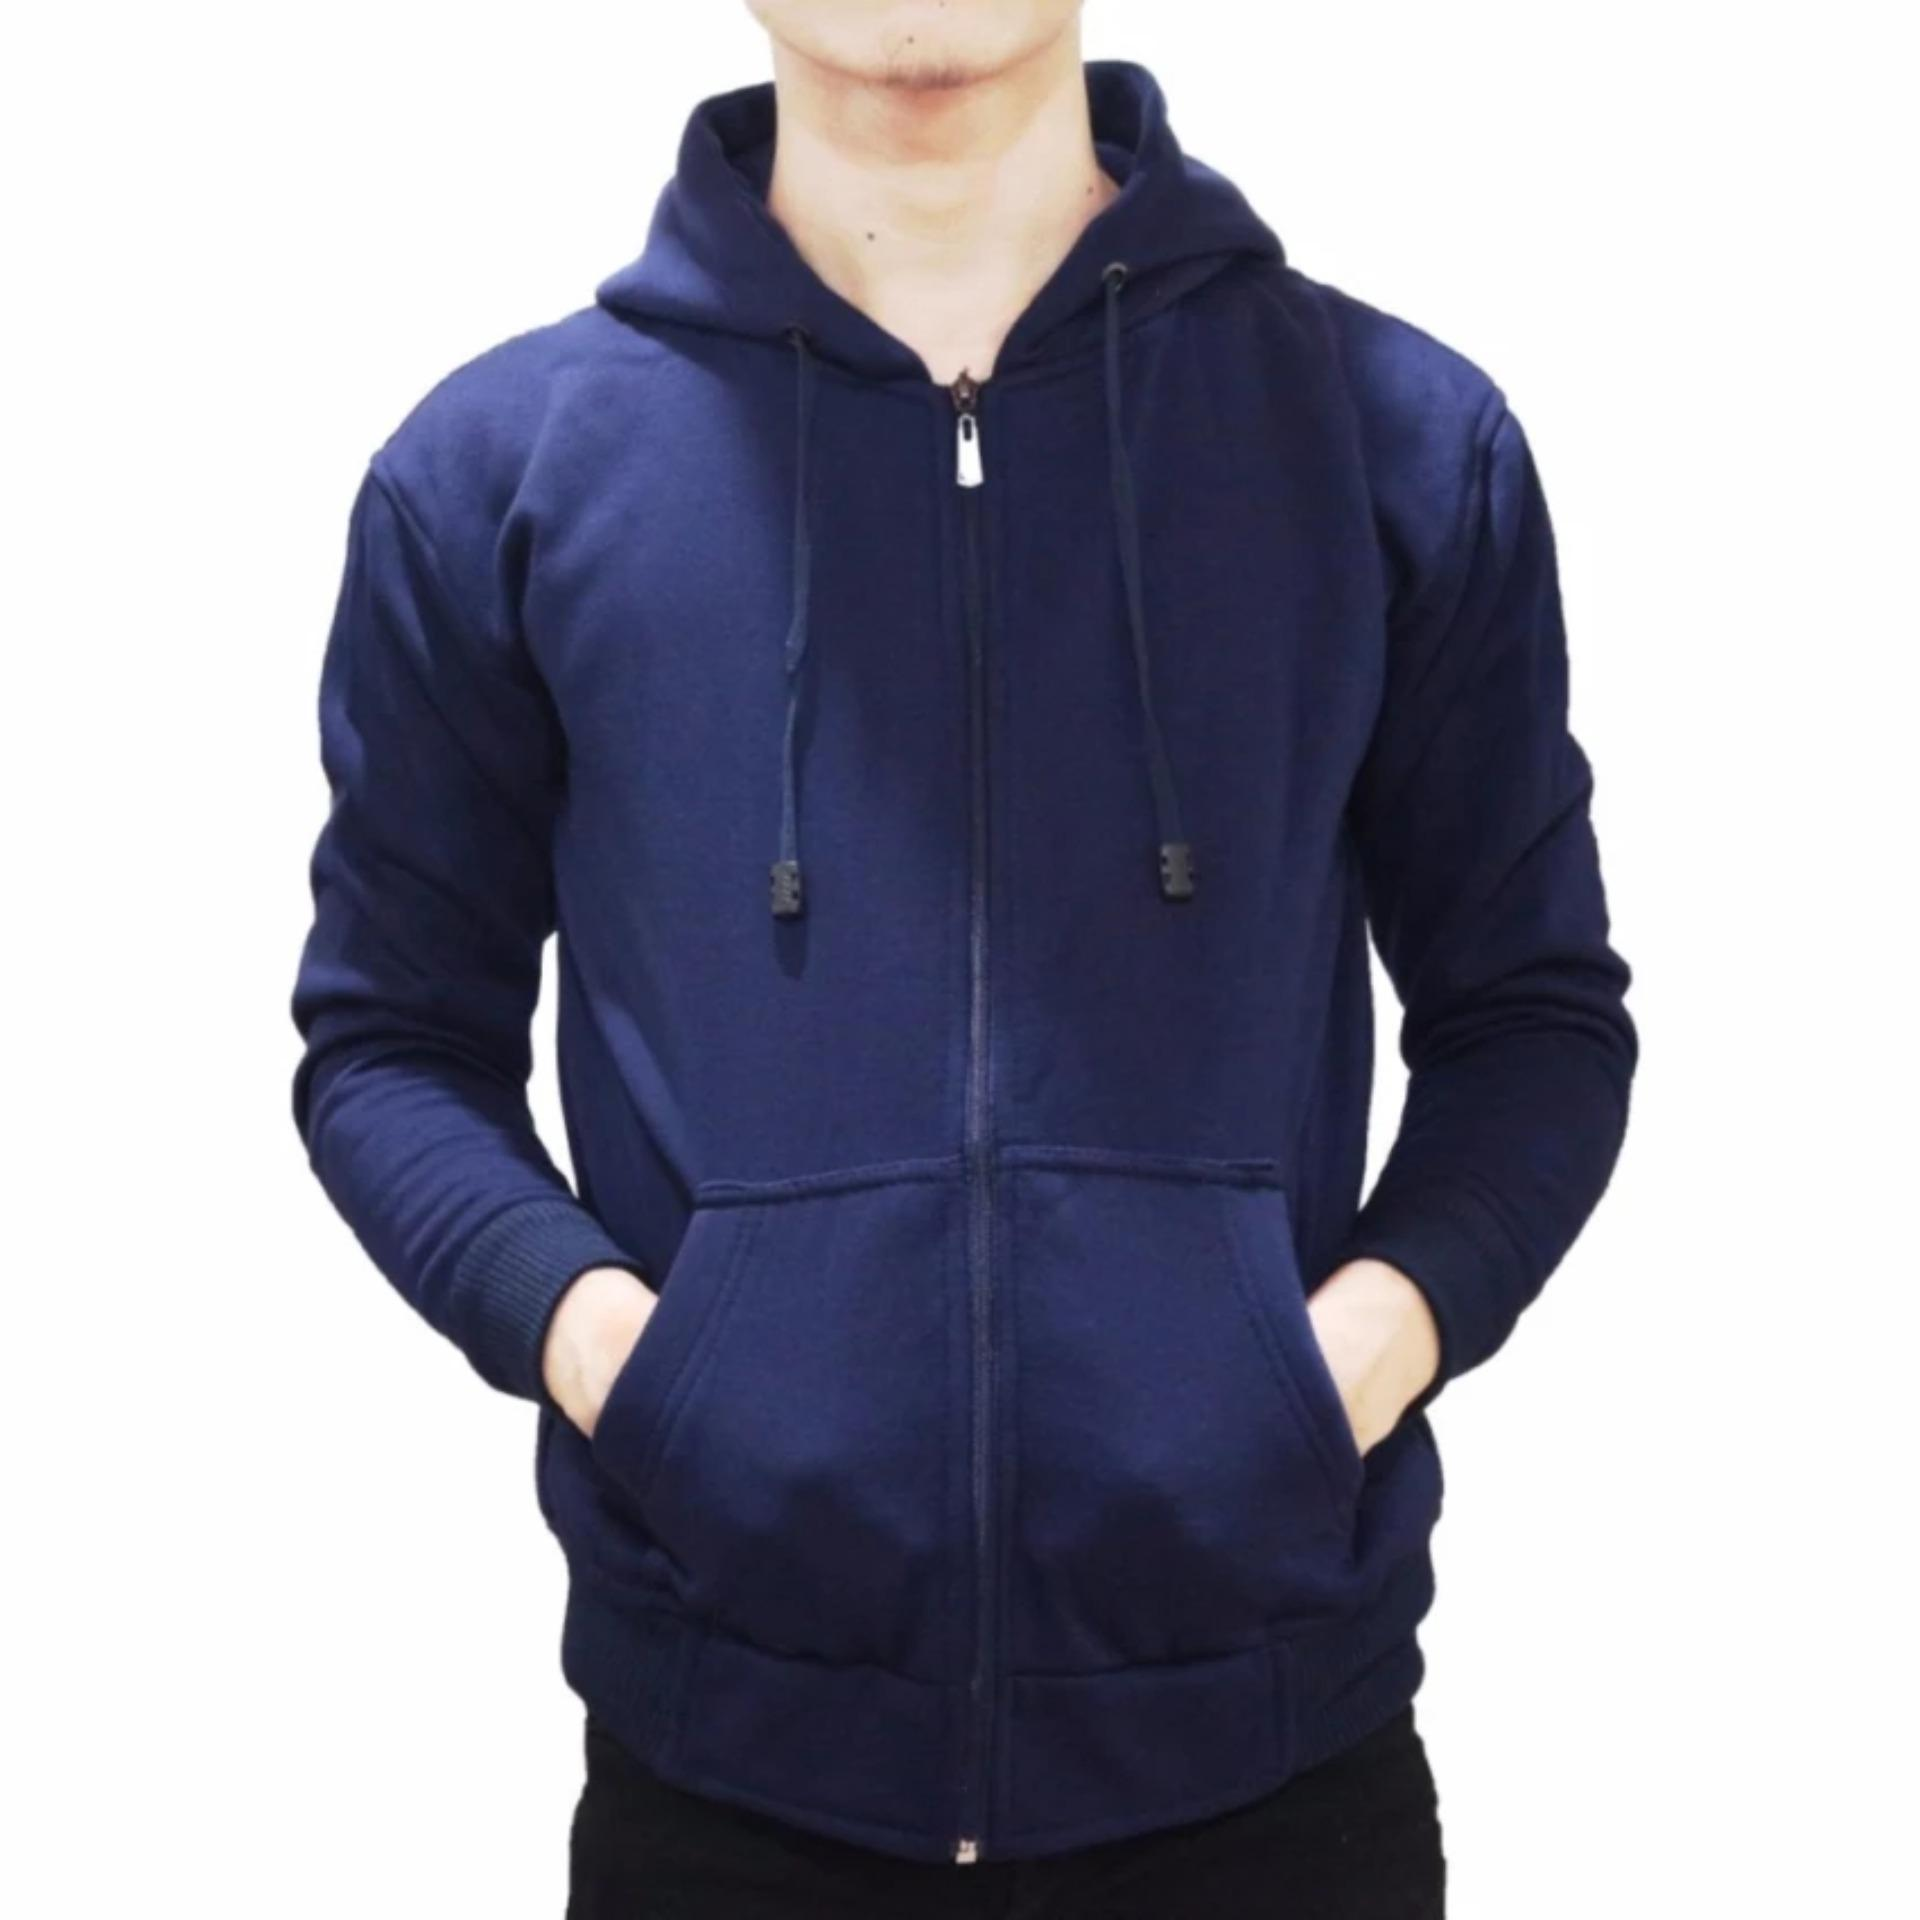 VERICHI - Jaket Sweater Hoodie Pria Zipper Polos Bahan Fleece 20b86c53b2